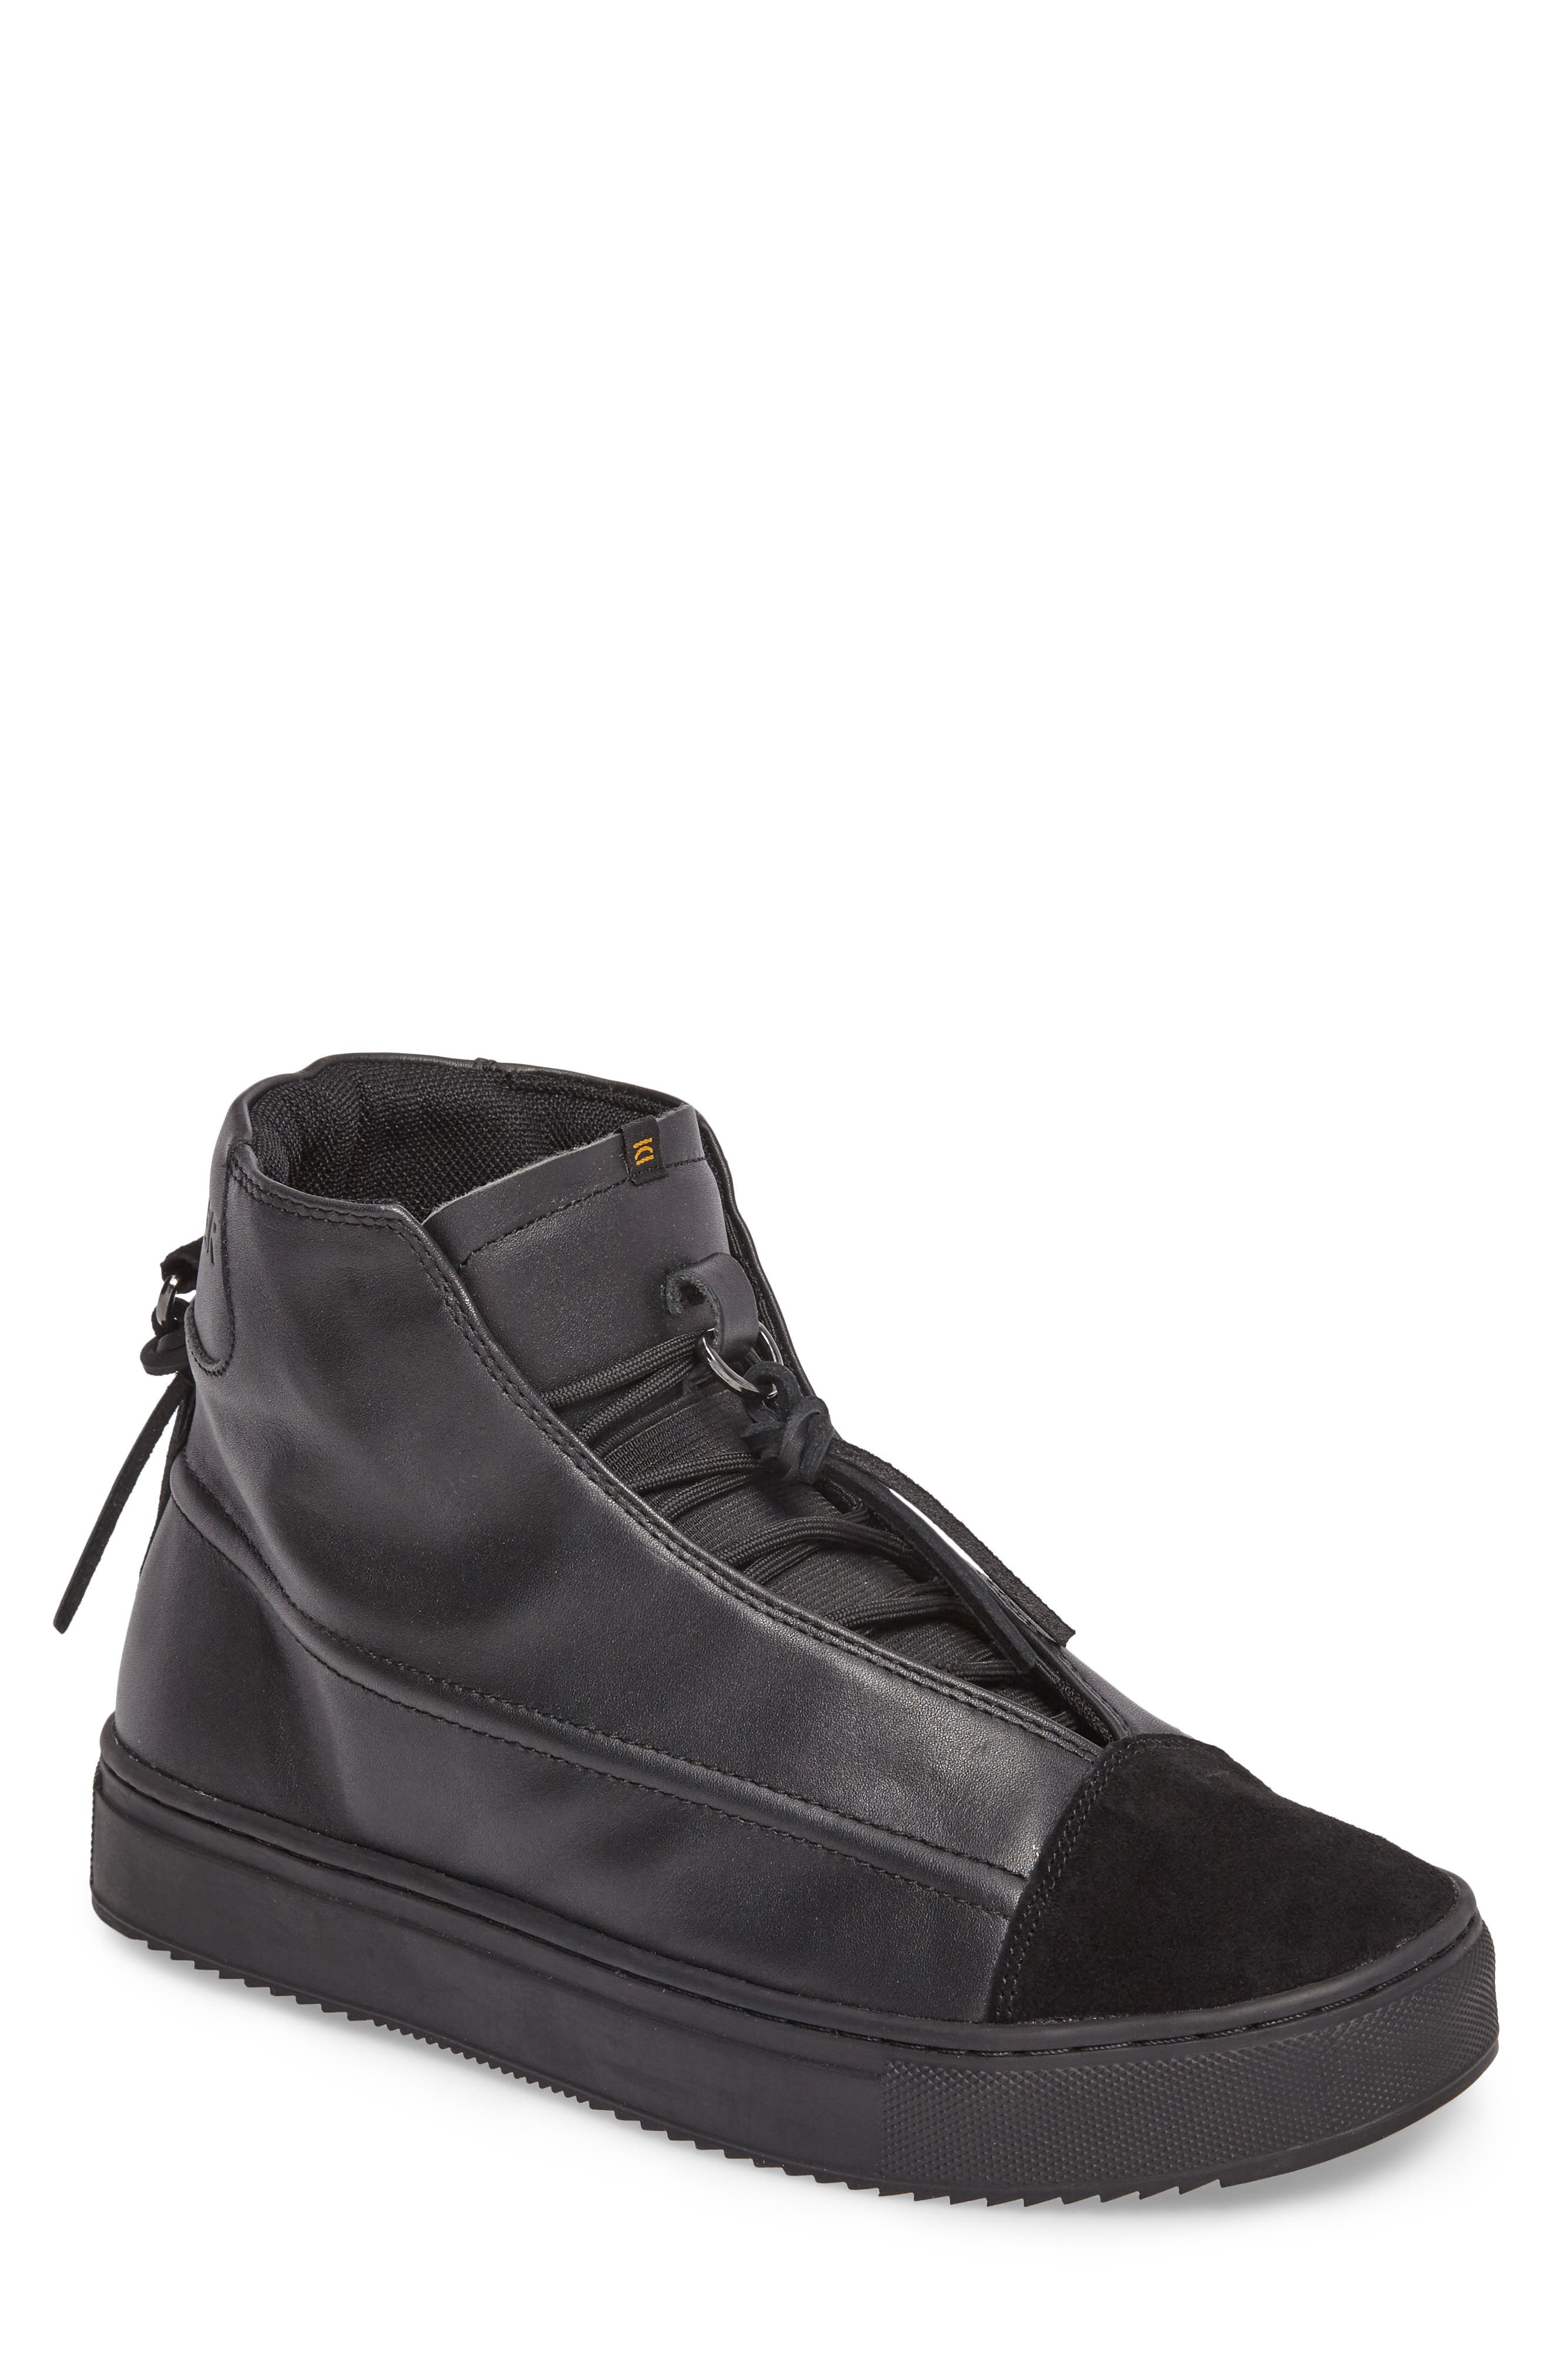 Sidney High Top Sneaker,                         Main,                         color, 001